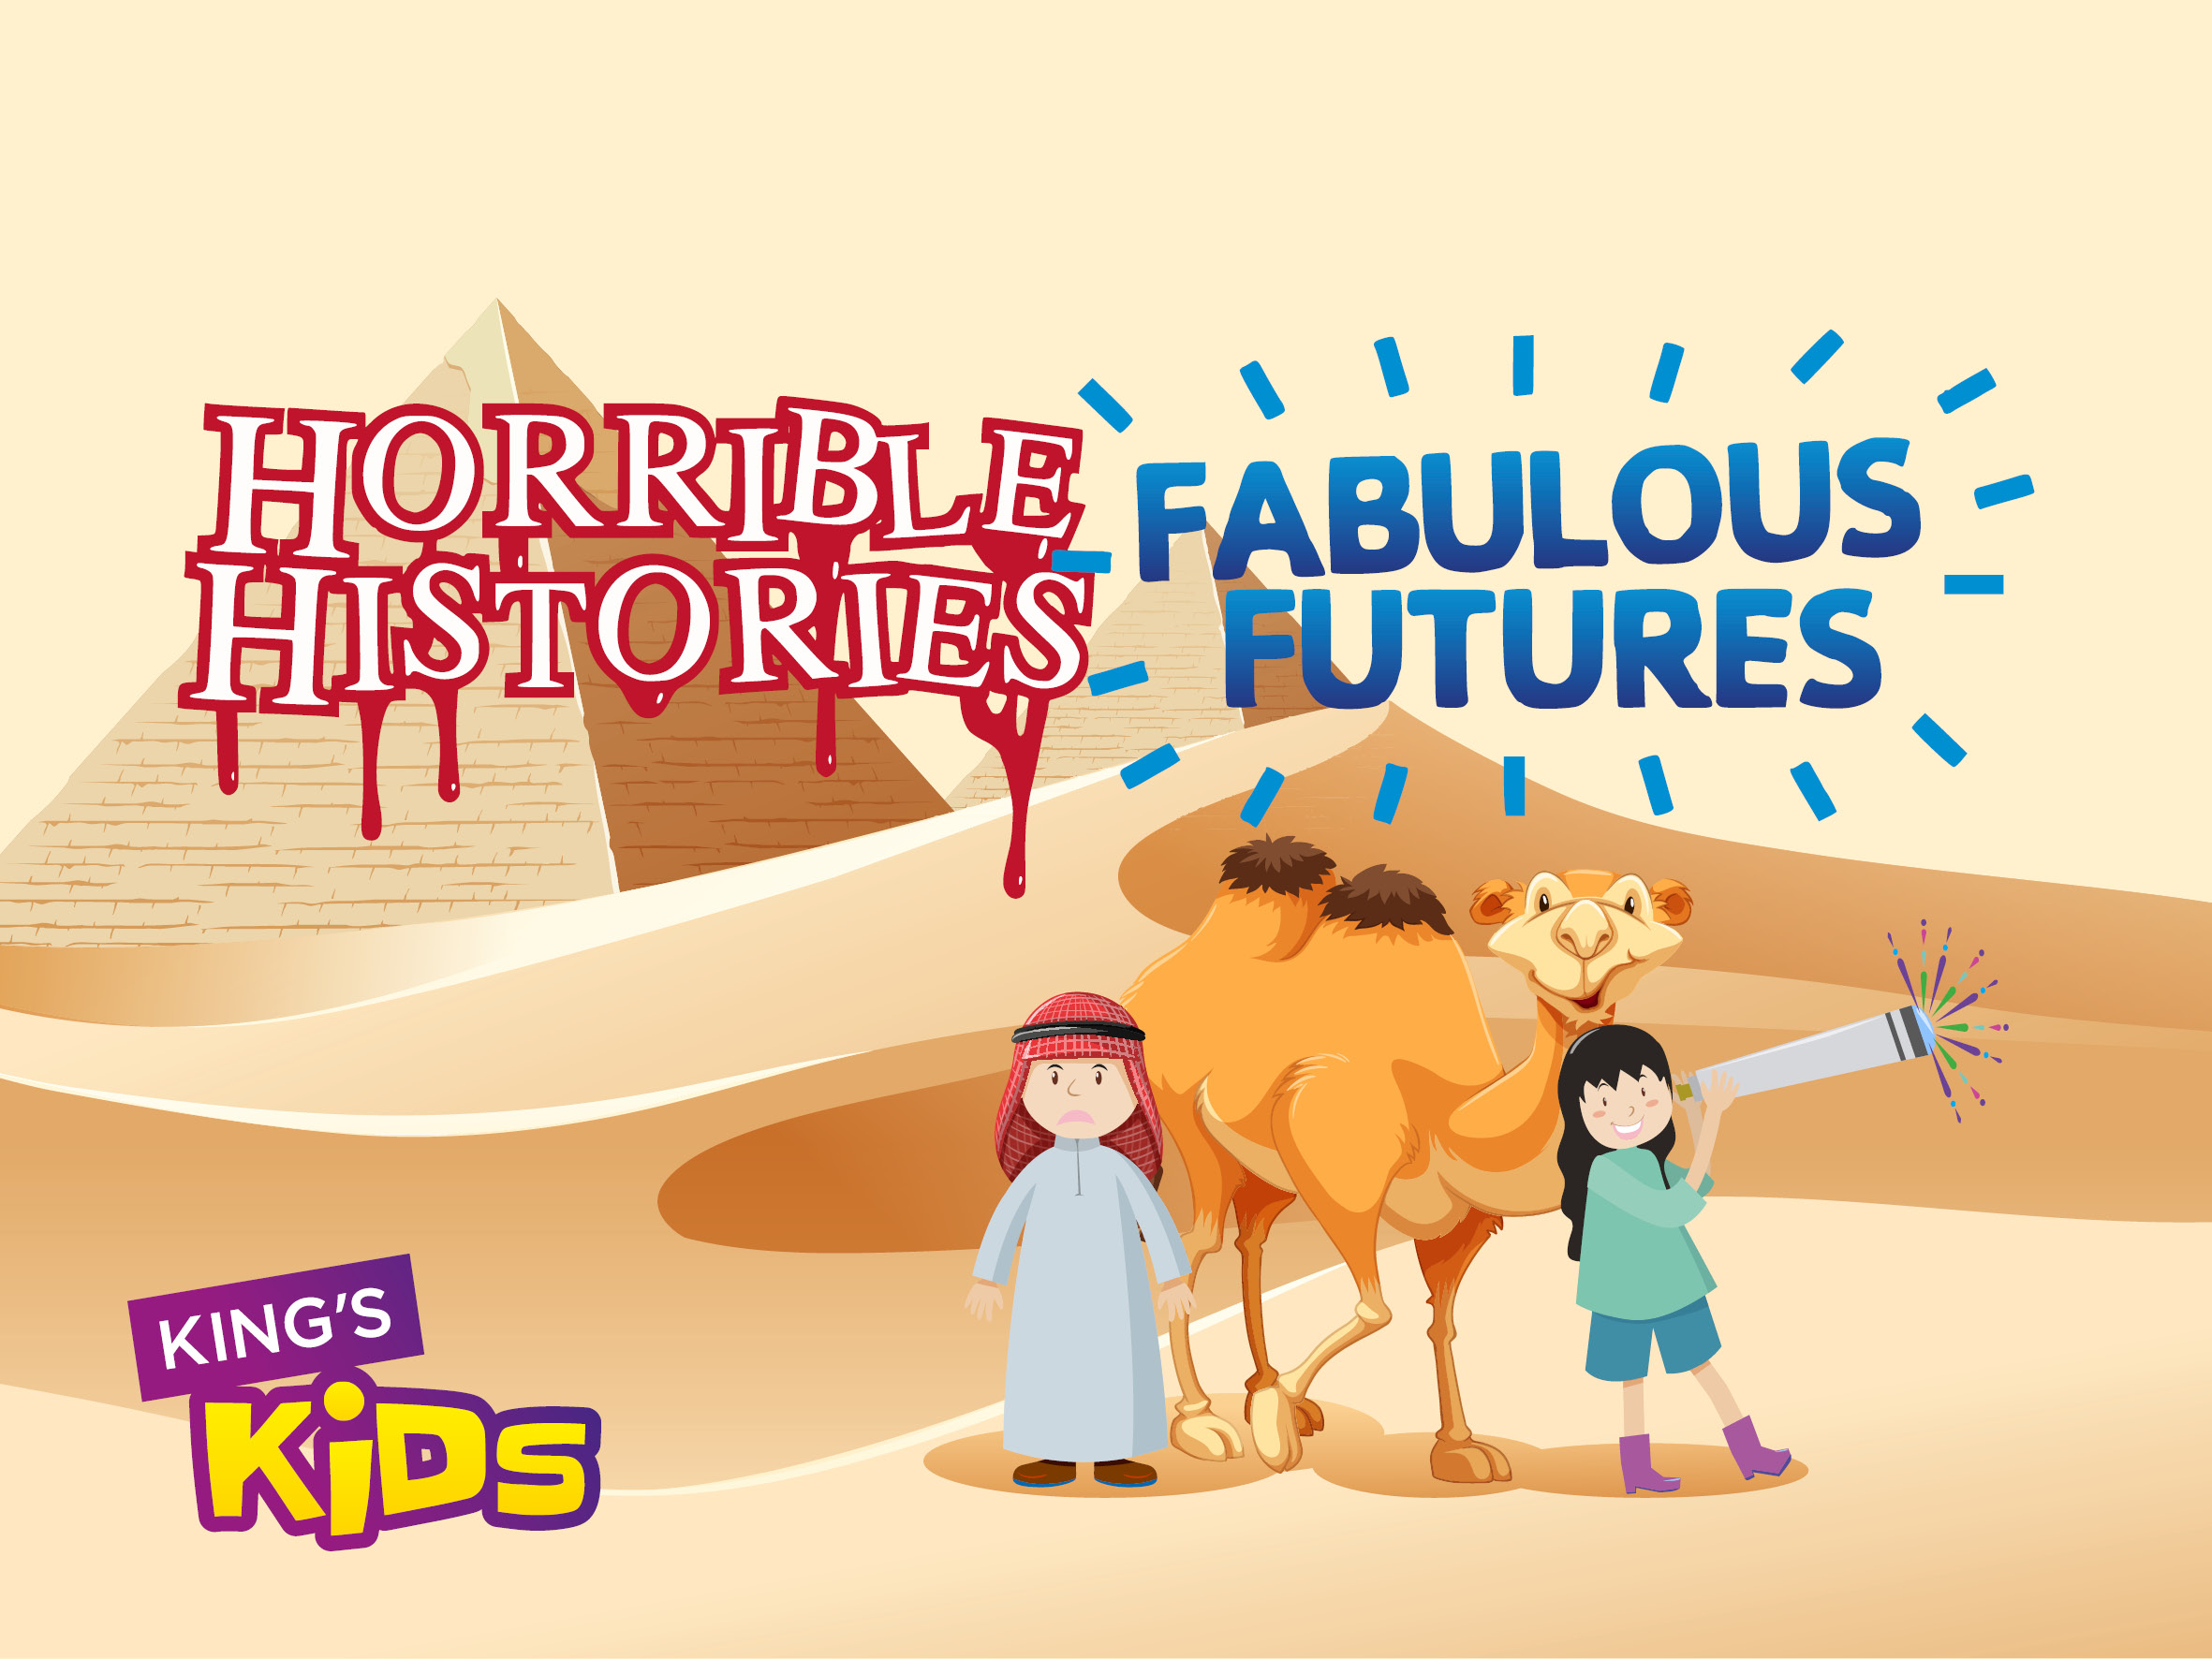 Kings_KC_Kids_HorribleHistories_Web.jpg